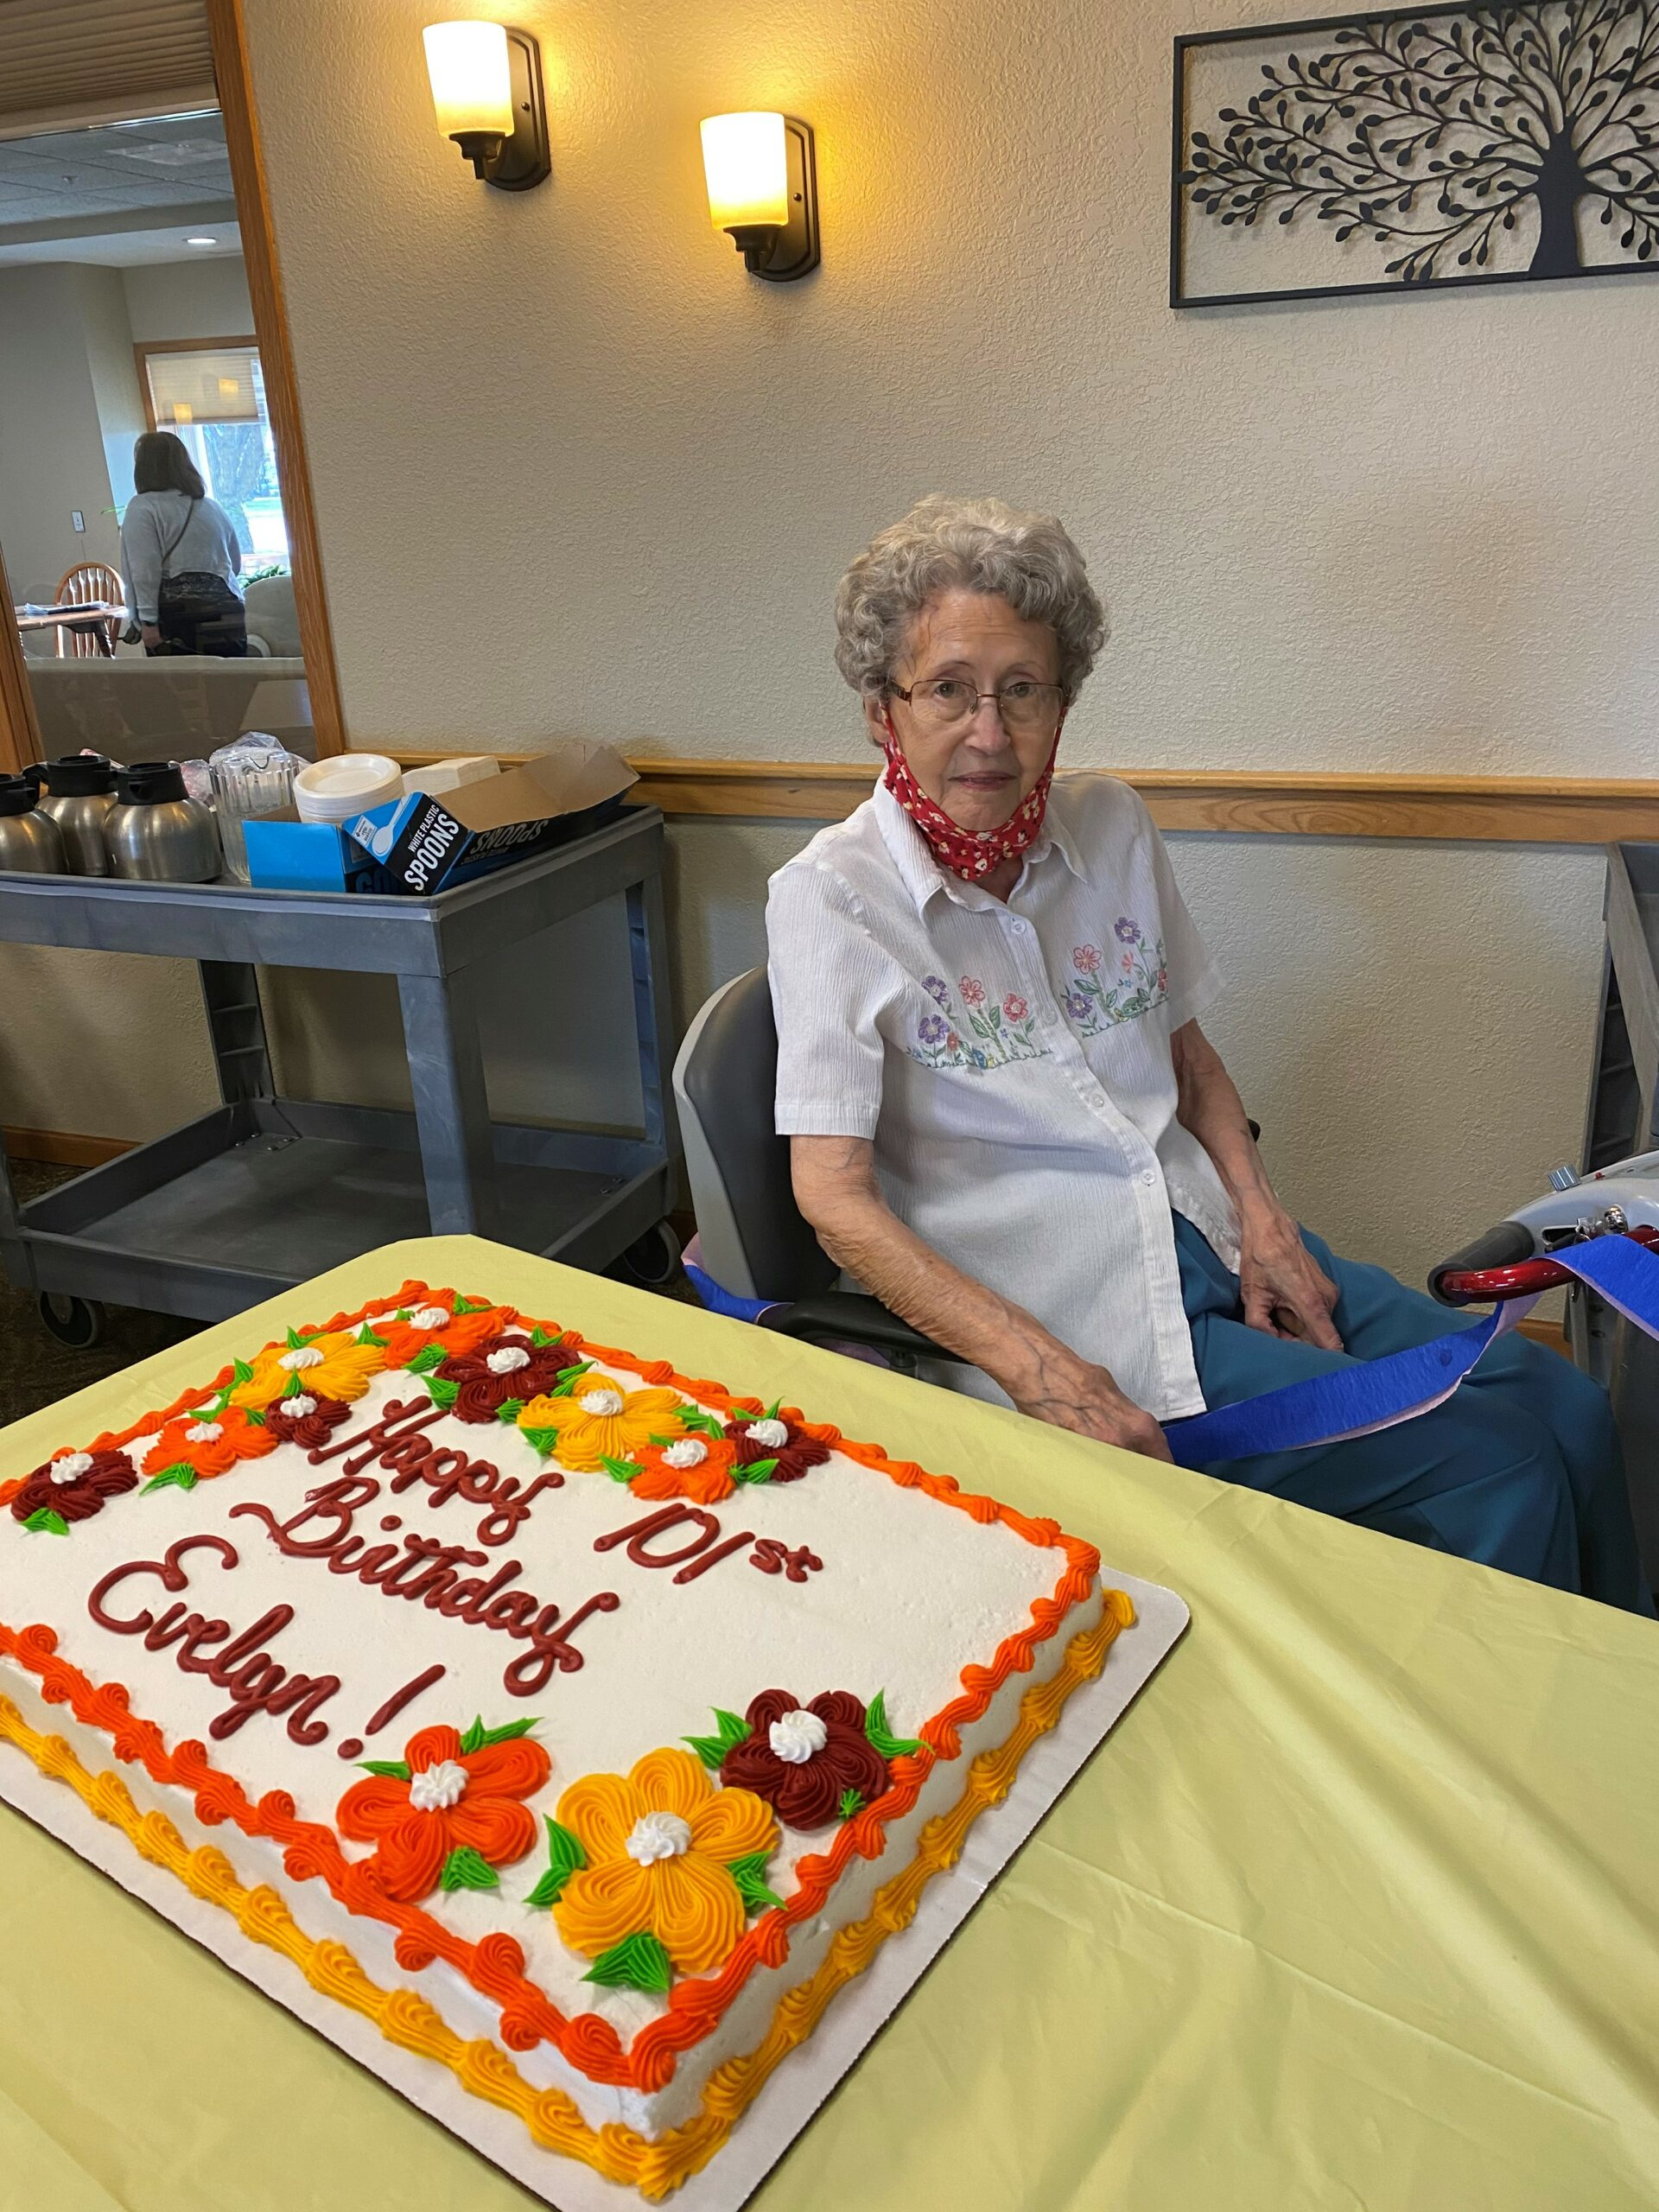 It doesn't happen every day that Evelyn turns 101, so ,of course we celebrate with cake & ice cream!